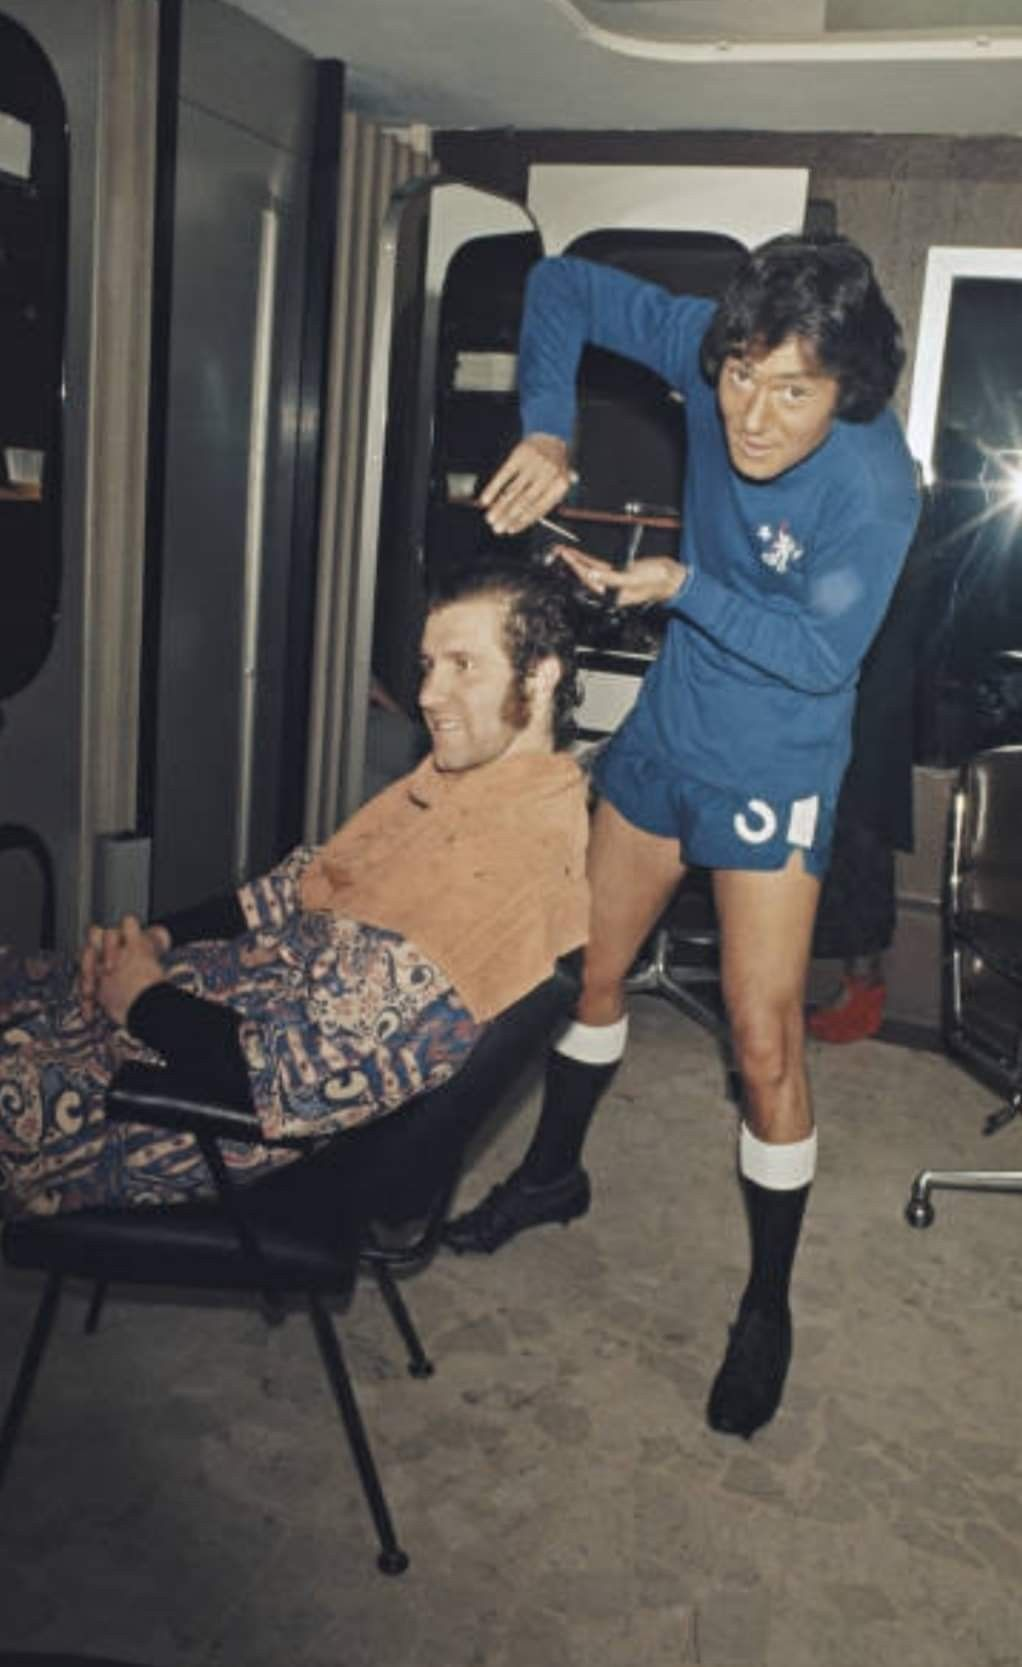 Peter Osgood getting a haircut from Vidal Sassoon